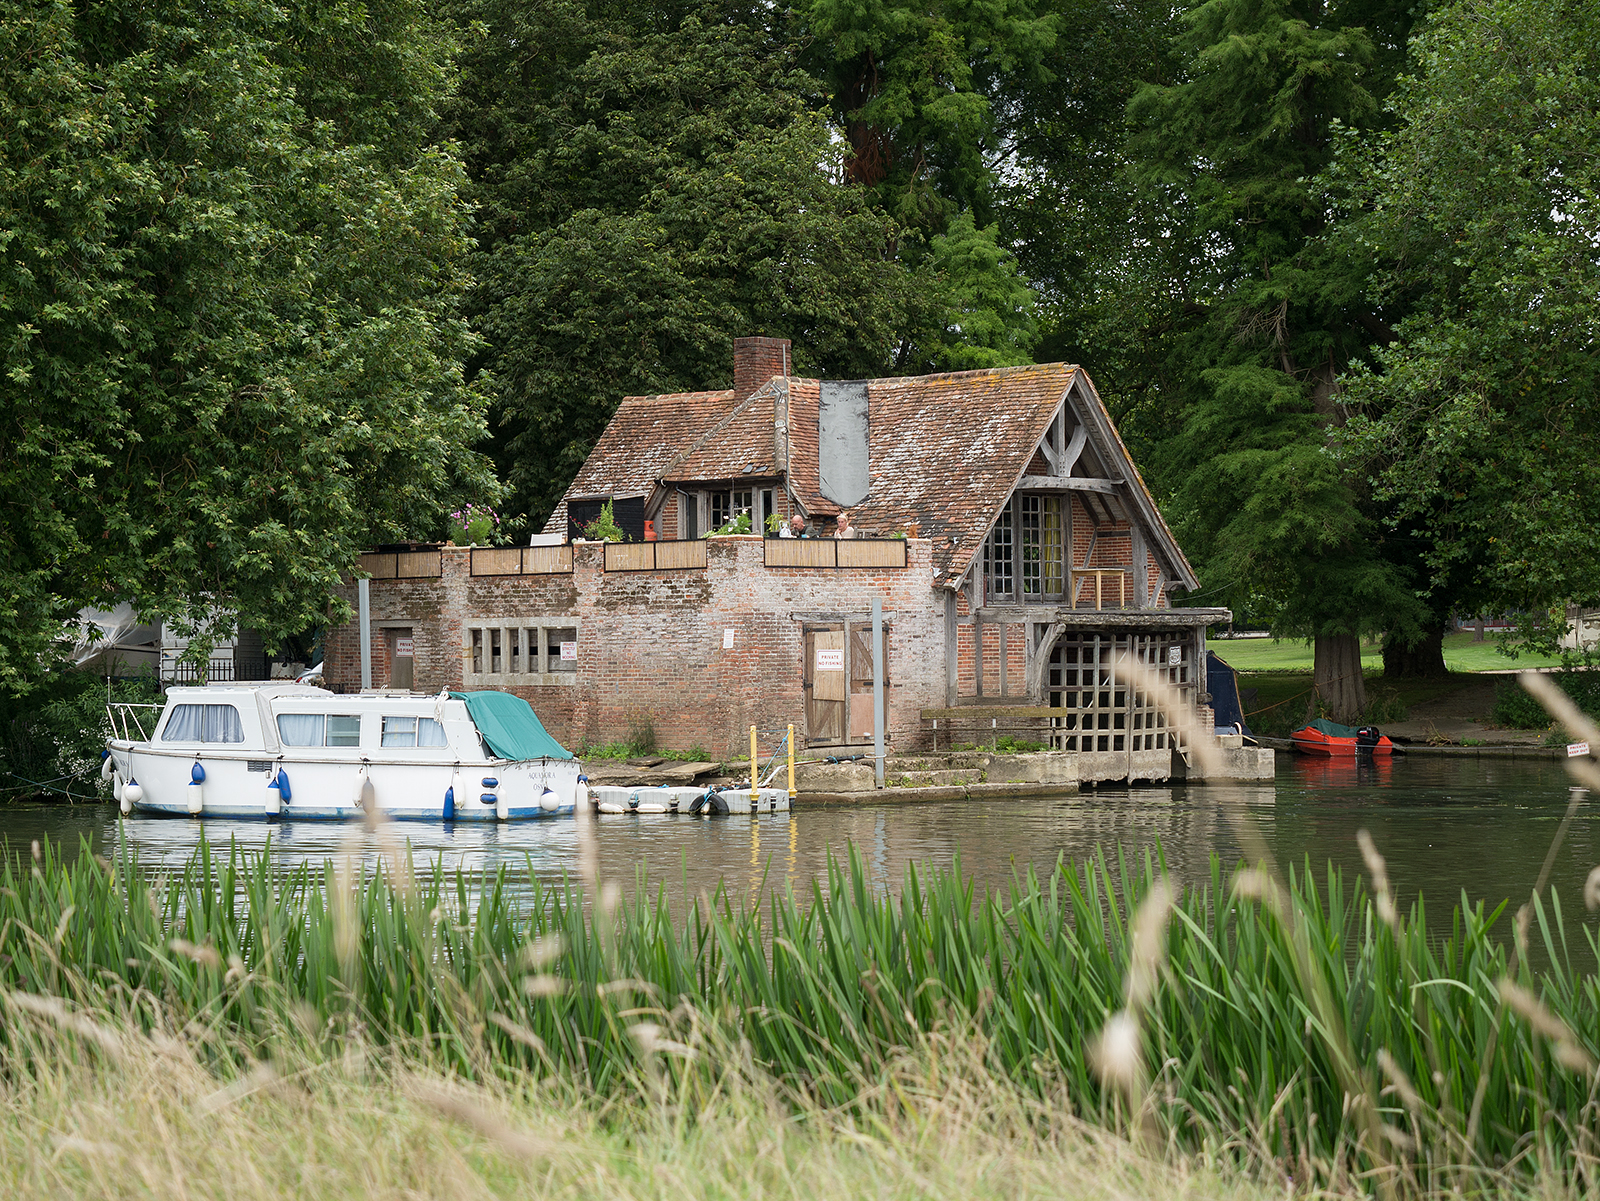 Boathouse at Mongewell